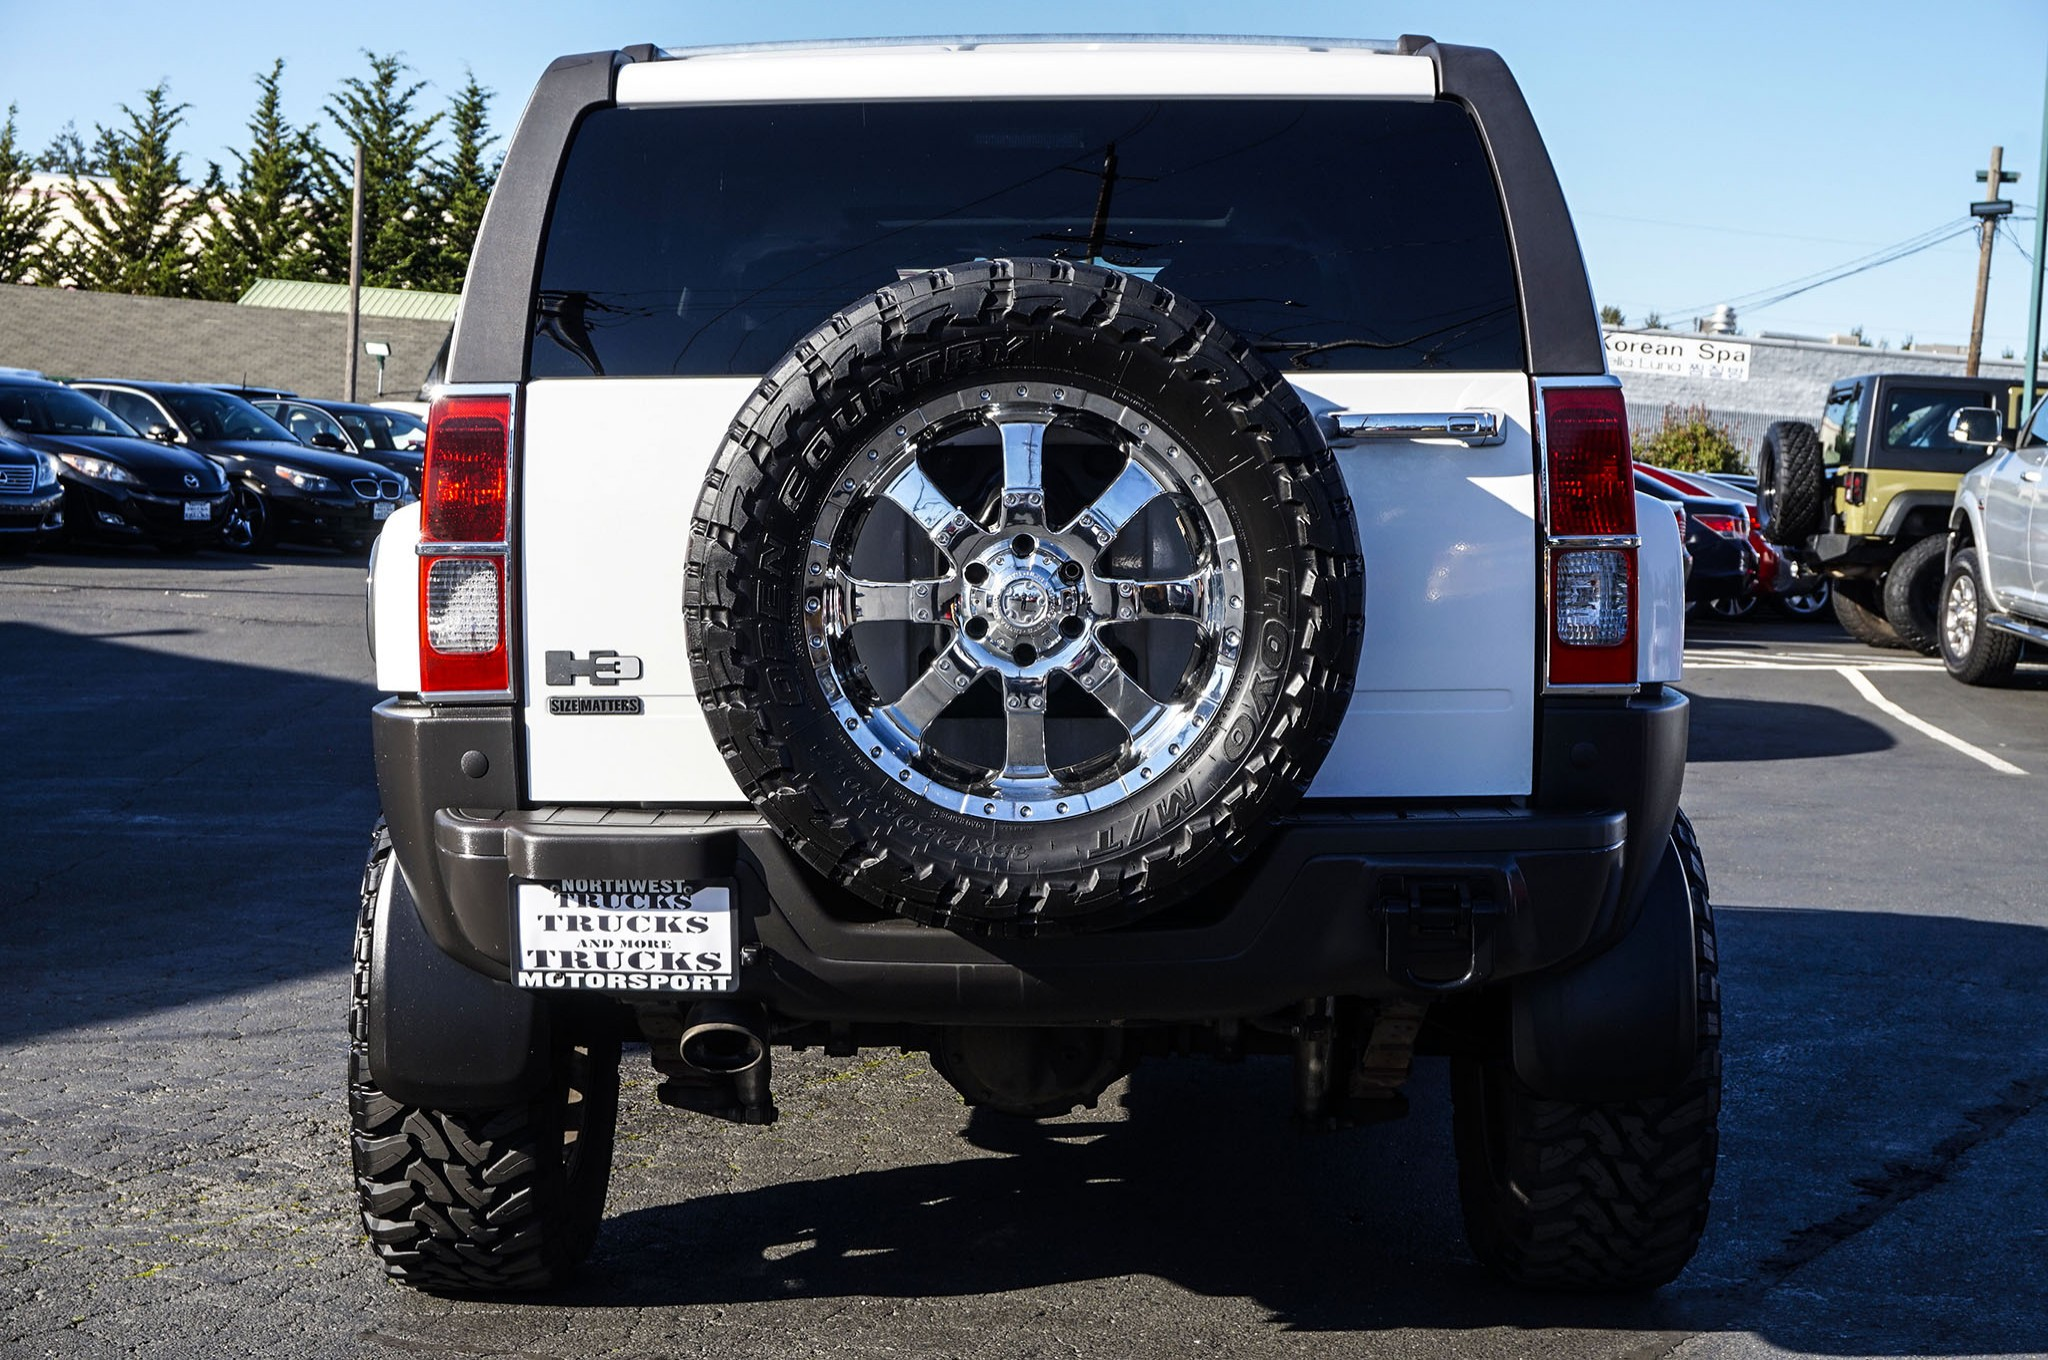 Lifted 2007 Hummer H3 4x4 Northwest Motorsport